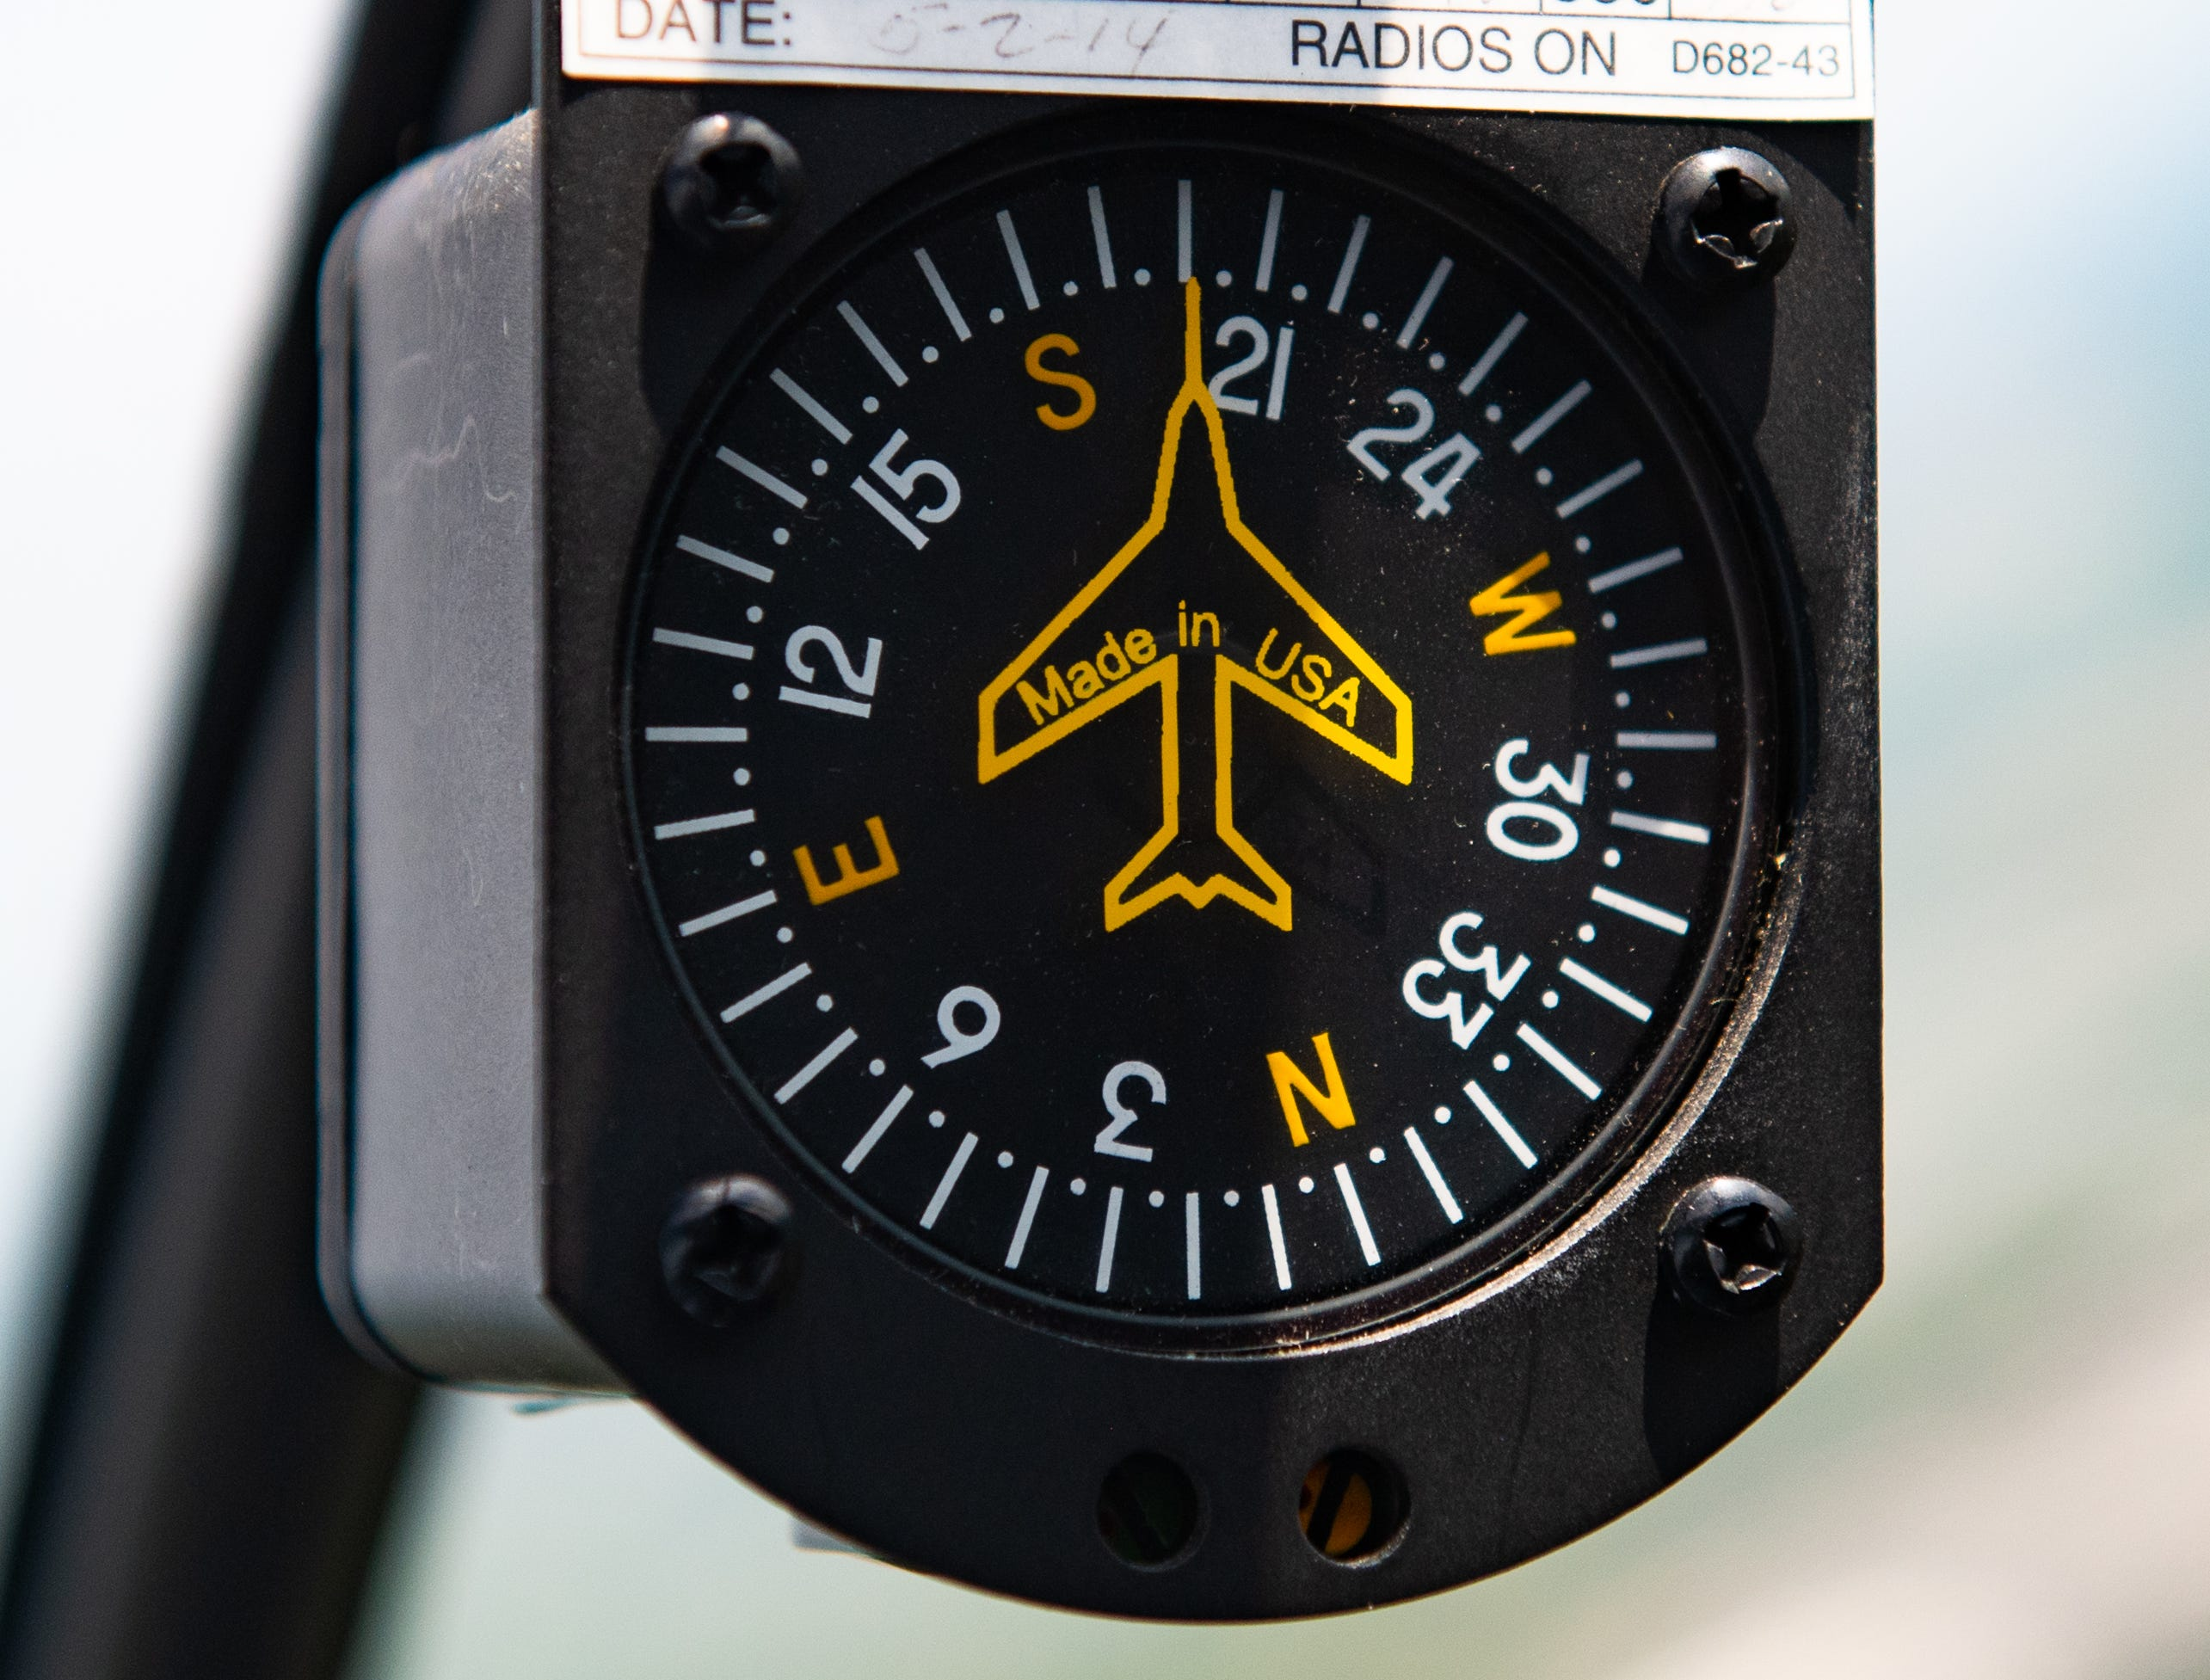 This compass helps Redlawsk stay on course to where ever she is headed, May 2, 2019.